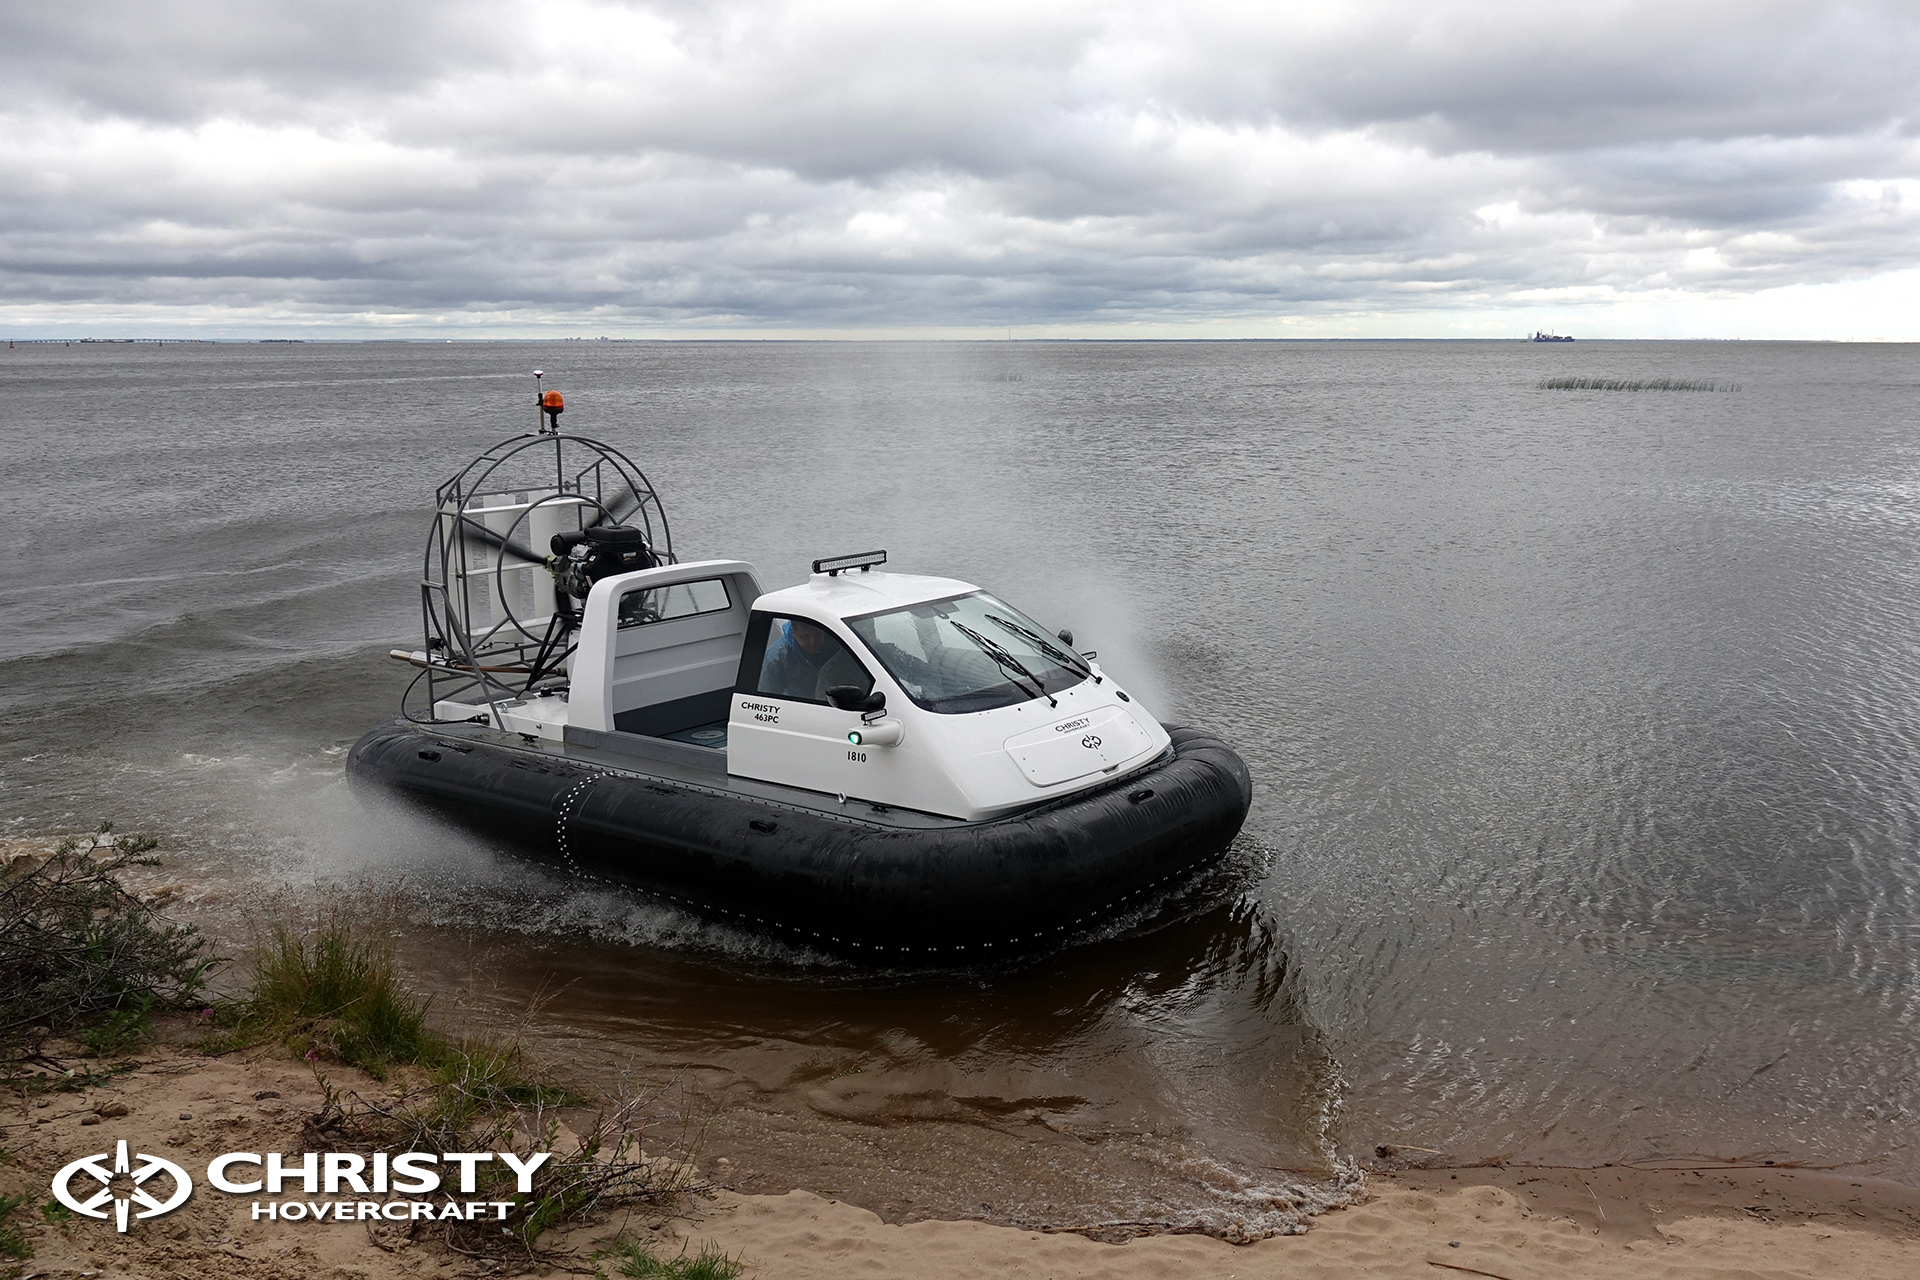 Hovercraft Christy 463 PC in Storm 290618 07.jpg | фото №5